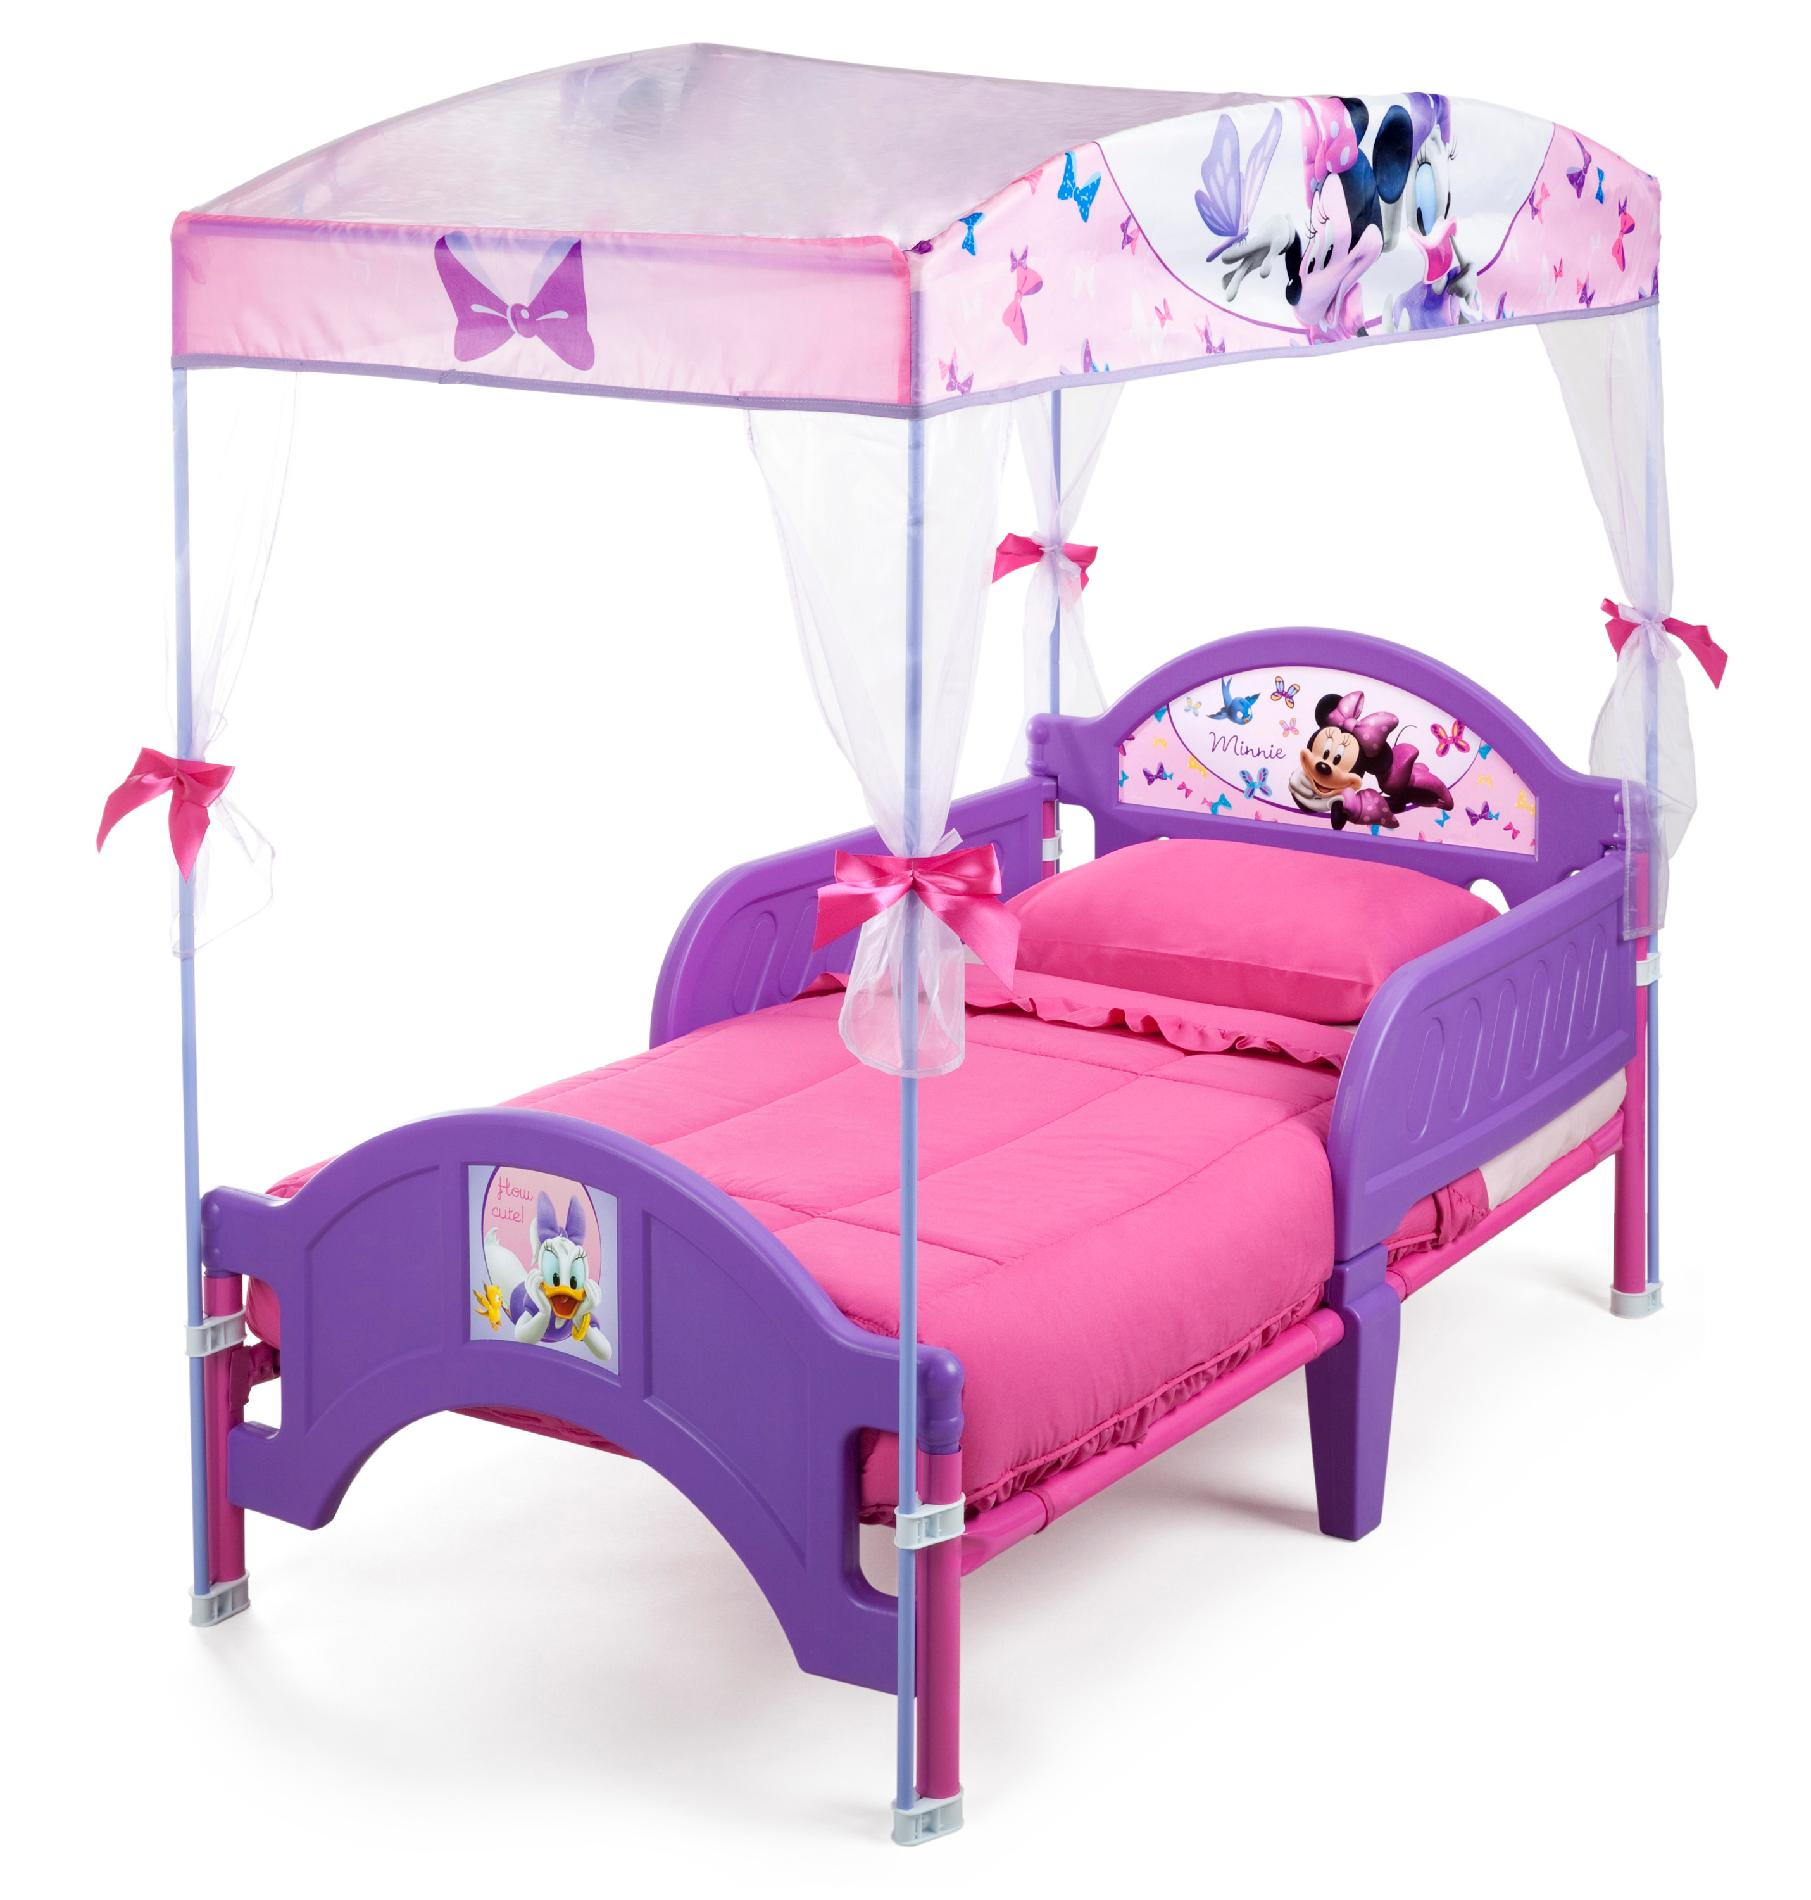 Sears Toddler Bed Canopy